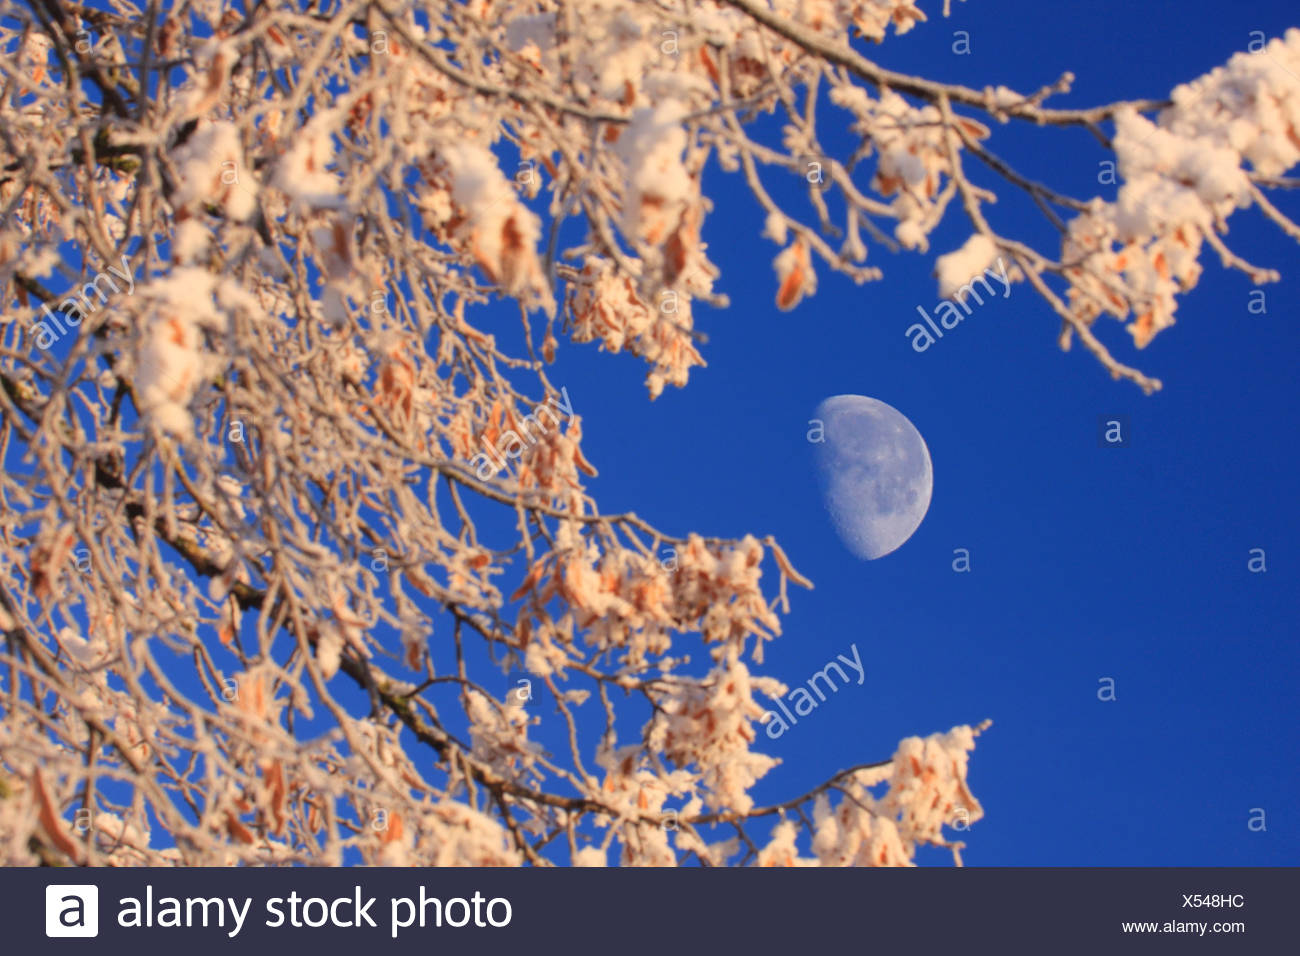 forest winter moonshine moon Switzerland Europe nature trees tree snow blue sky branches hoarfrost cold Stock Photo